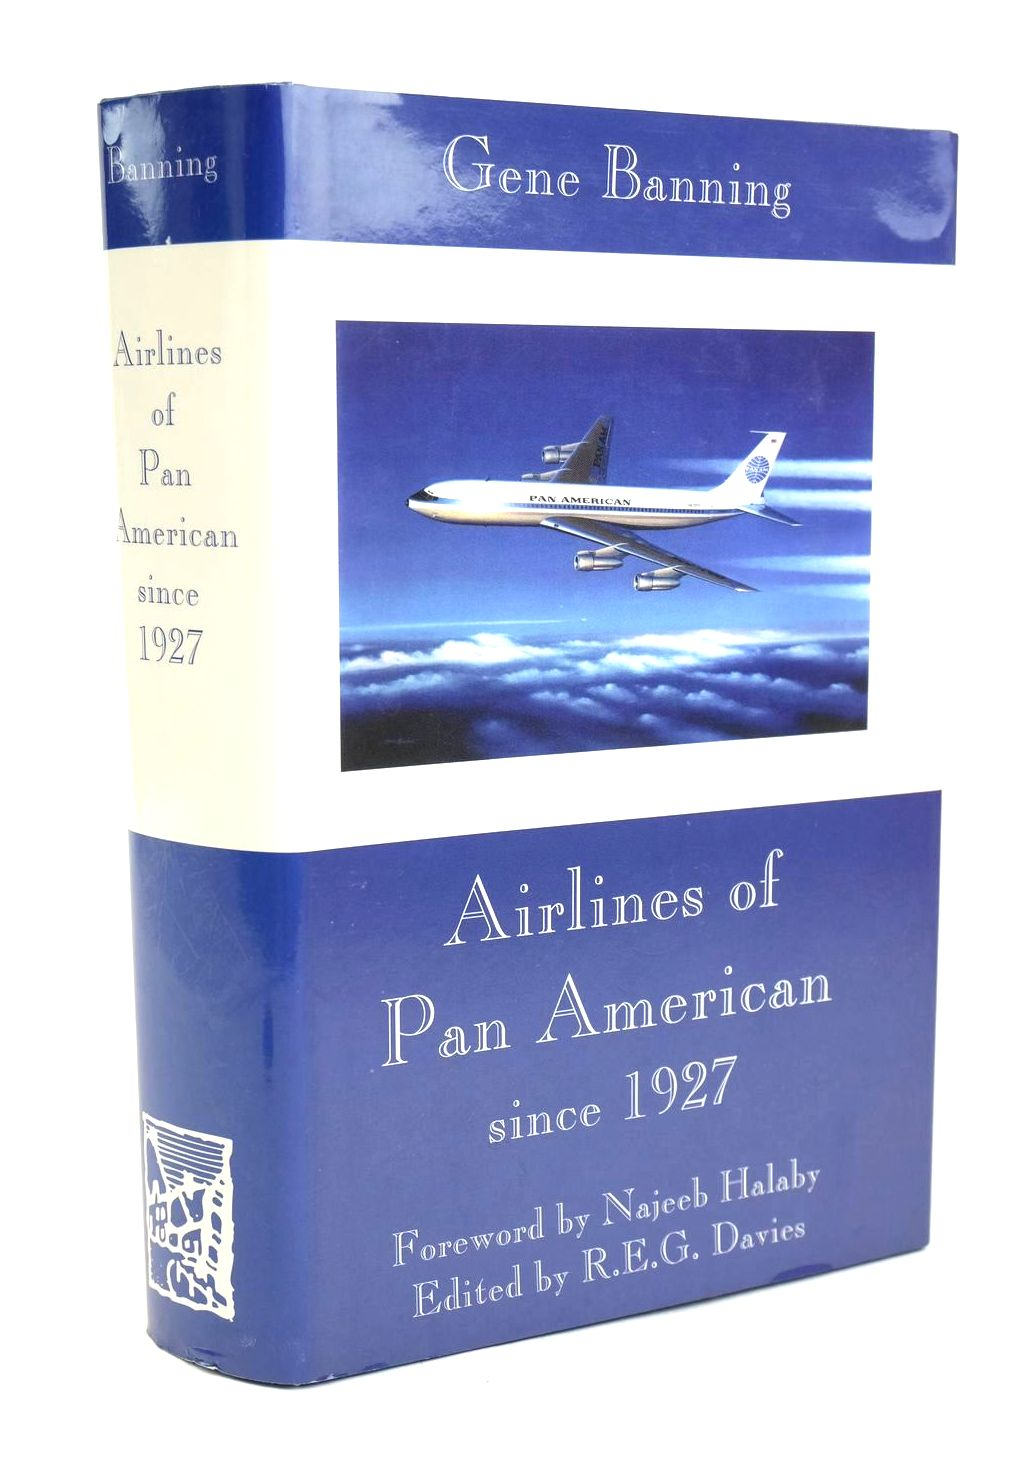 Photo of AIRLINES OF PAN AMERICAN SINCE 1927 ITS AIRLINES, ITS PEOPLE, AND ITS AIRCRAFT written by Banning, Gene published by Paladwr Press (STOCK CODE: 1319658)  for sale by Stella & Rose's Books